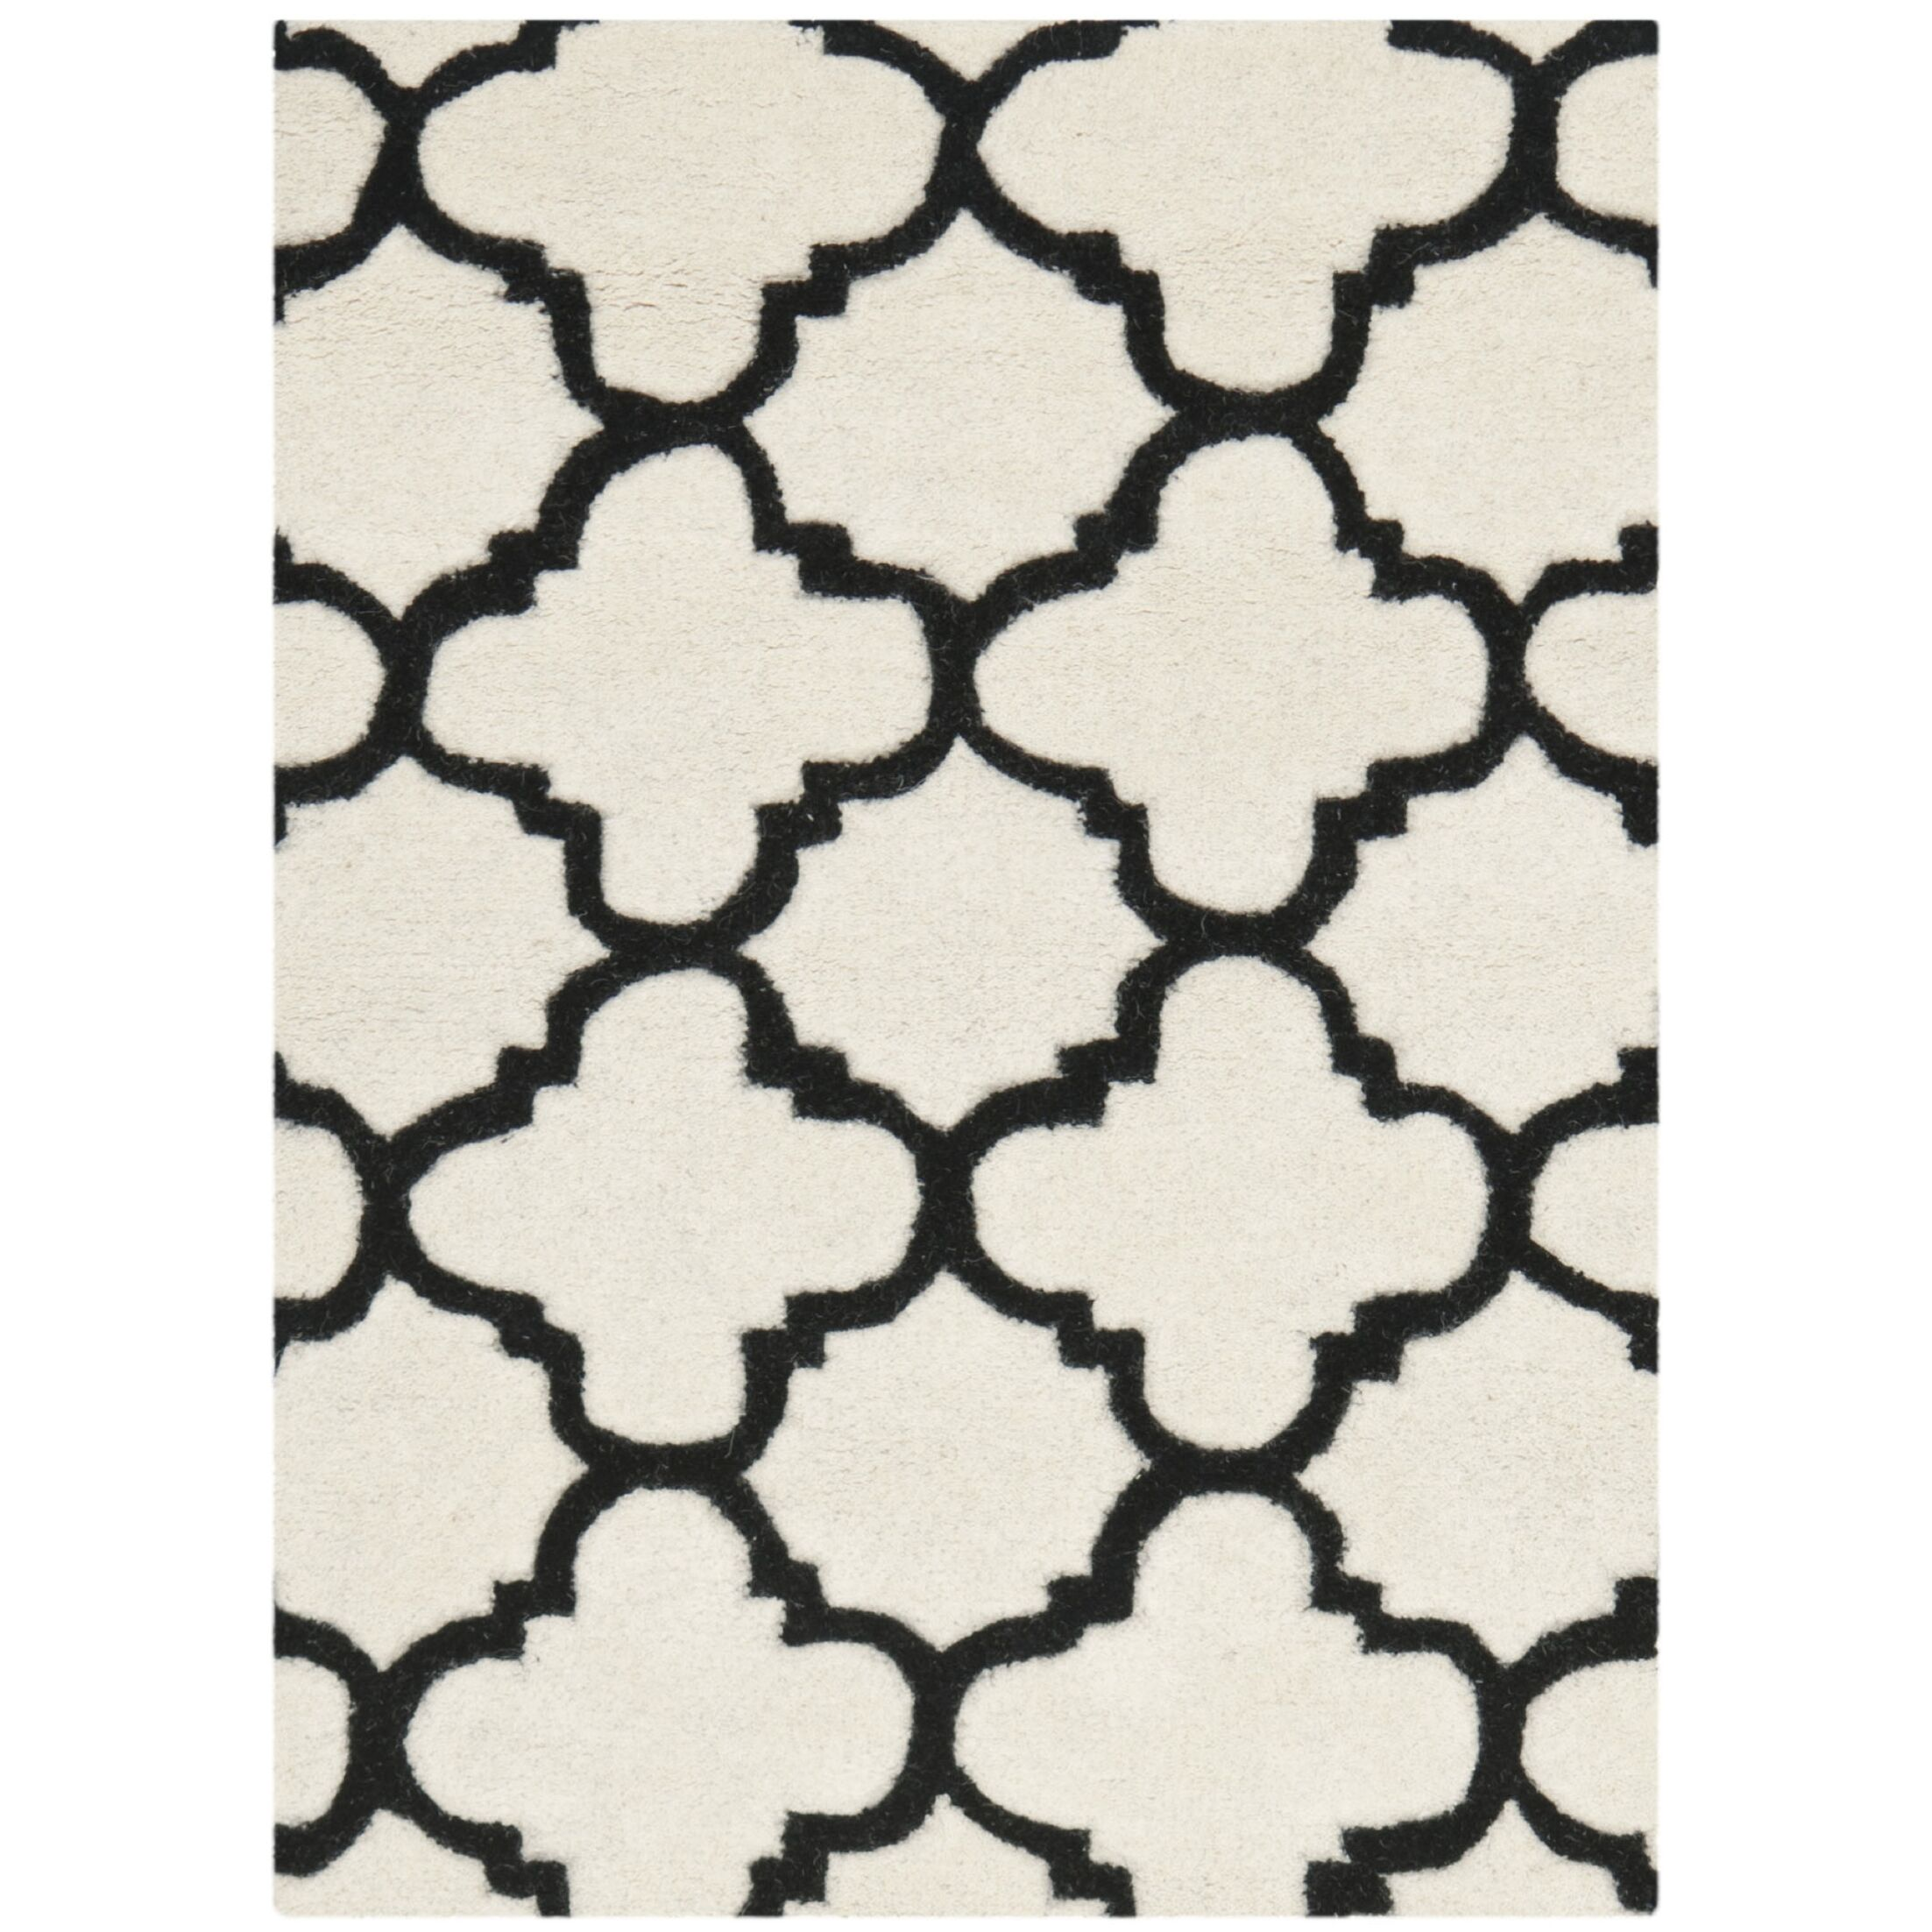 Wilkin Hand-Tufted Ivory/Black Area Rug Rug Size: Rectangle 8' x 10'